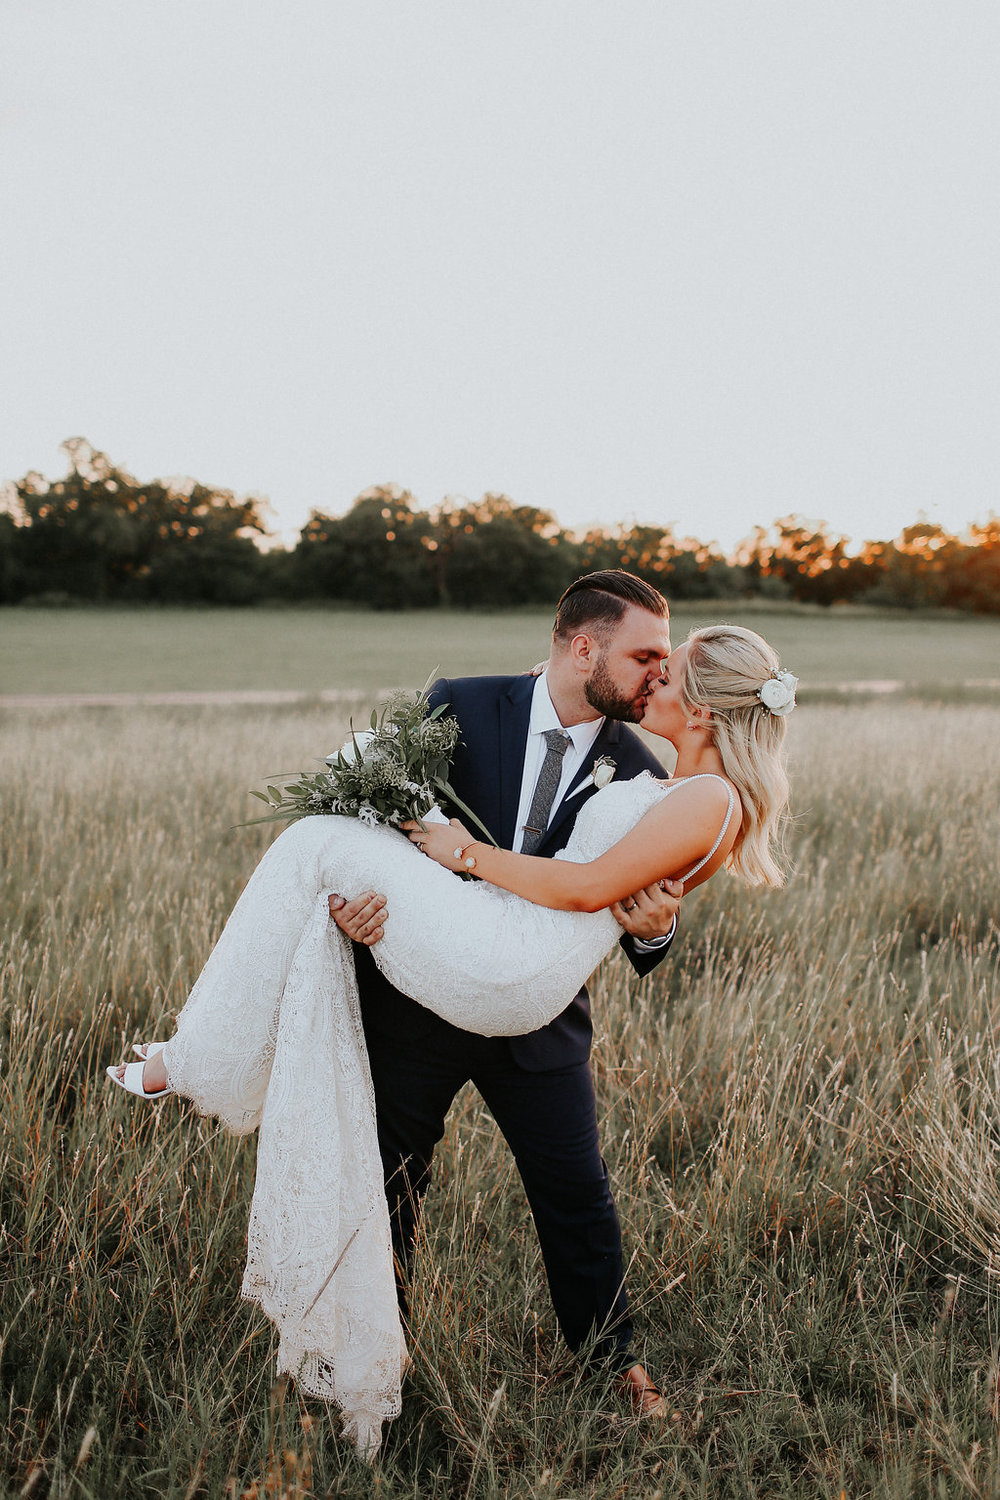 Congratulations Logan and Kinsey!   Photography: Melissa Marshall of http://www.melissamarshall.co/